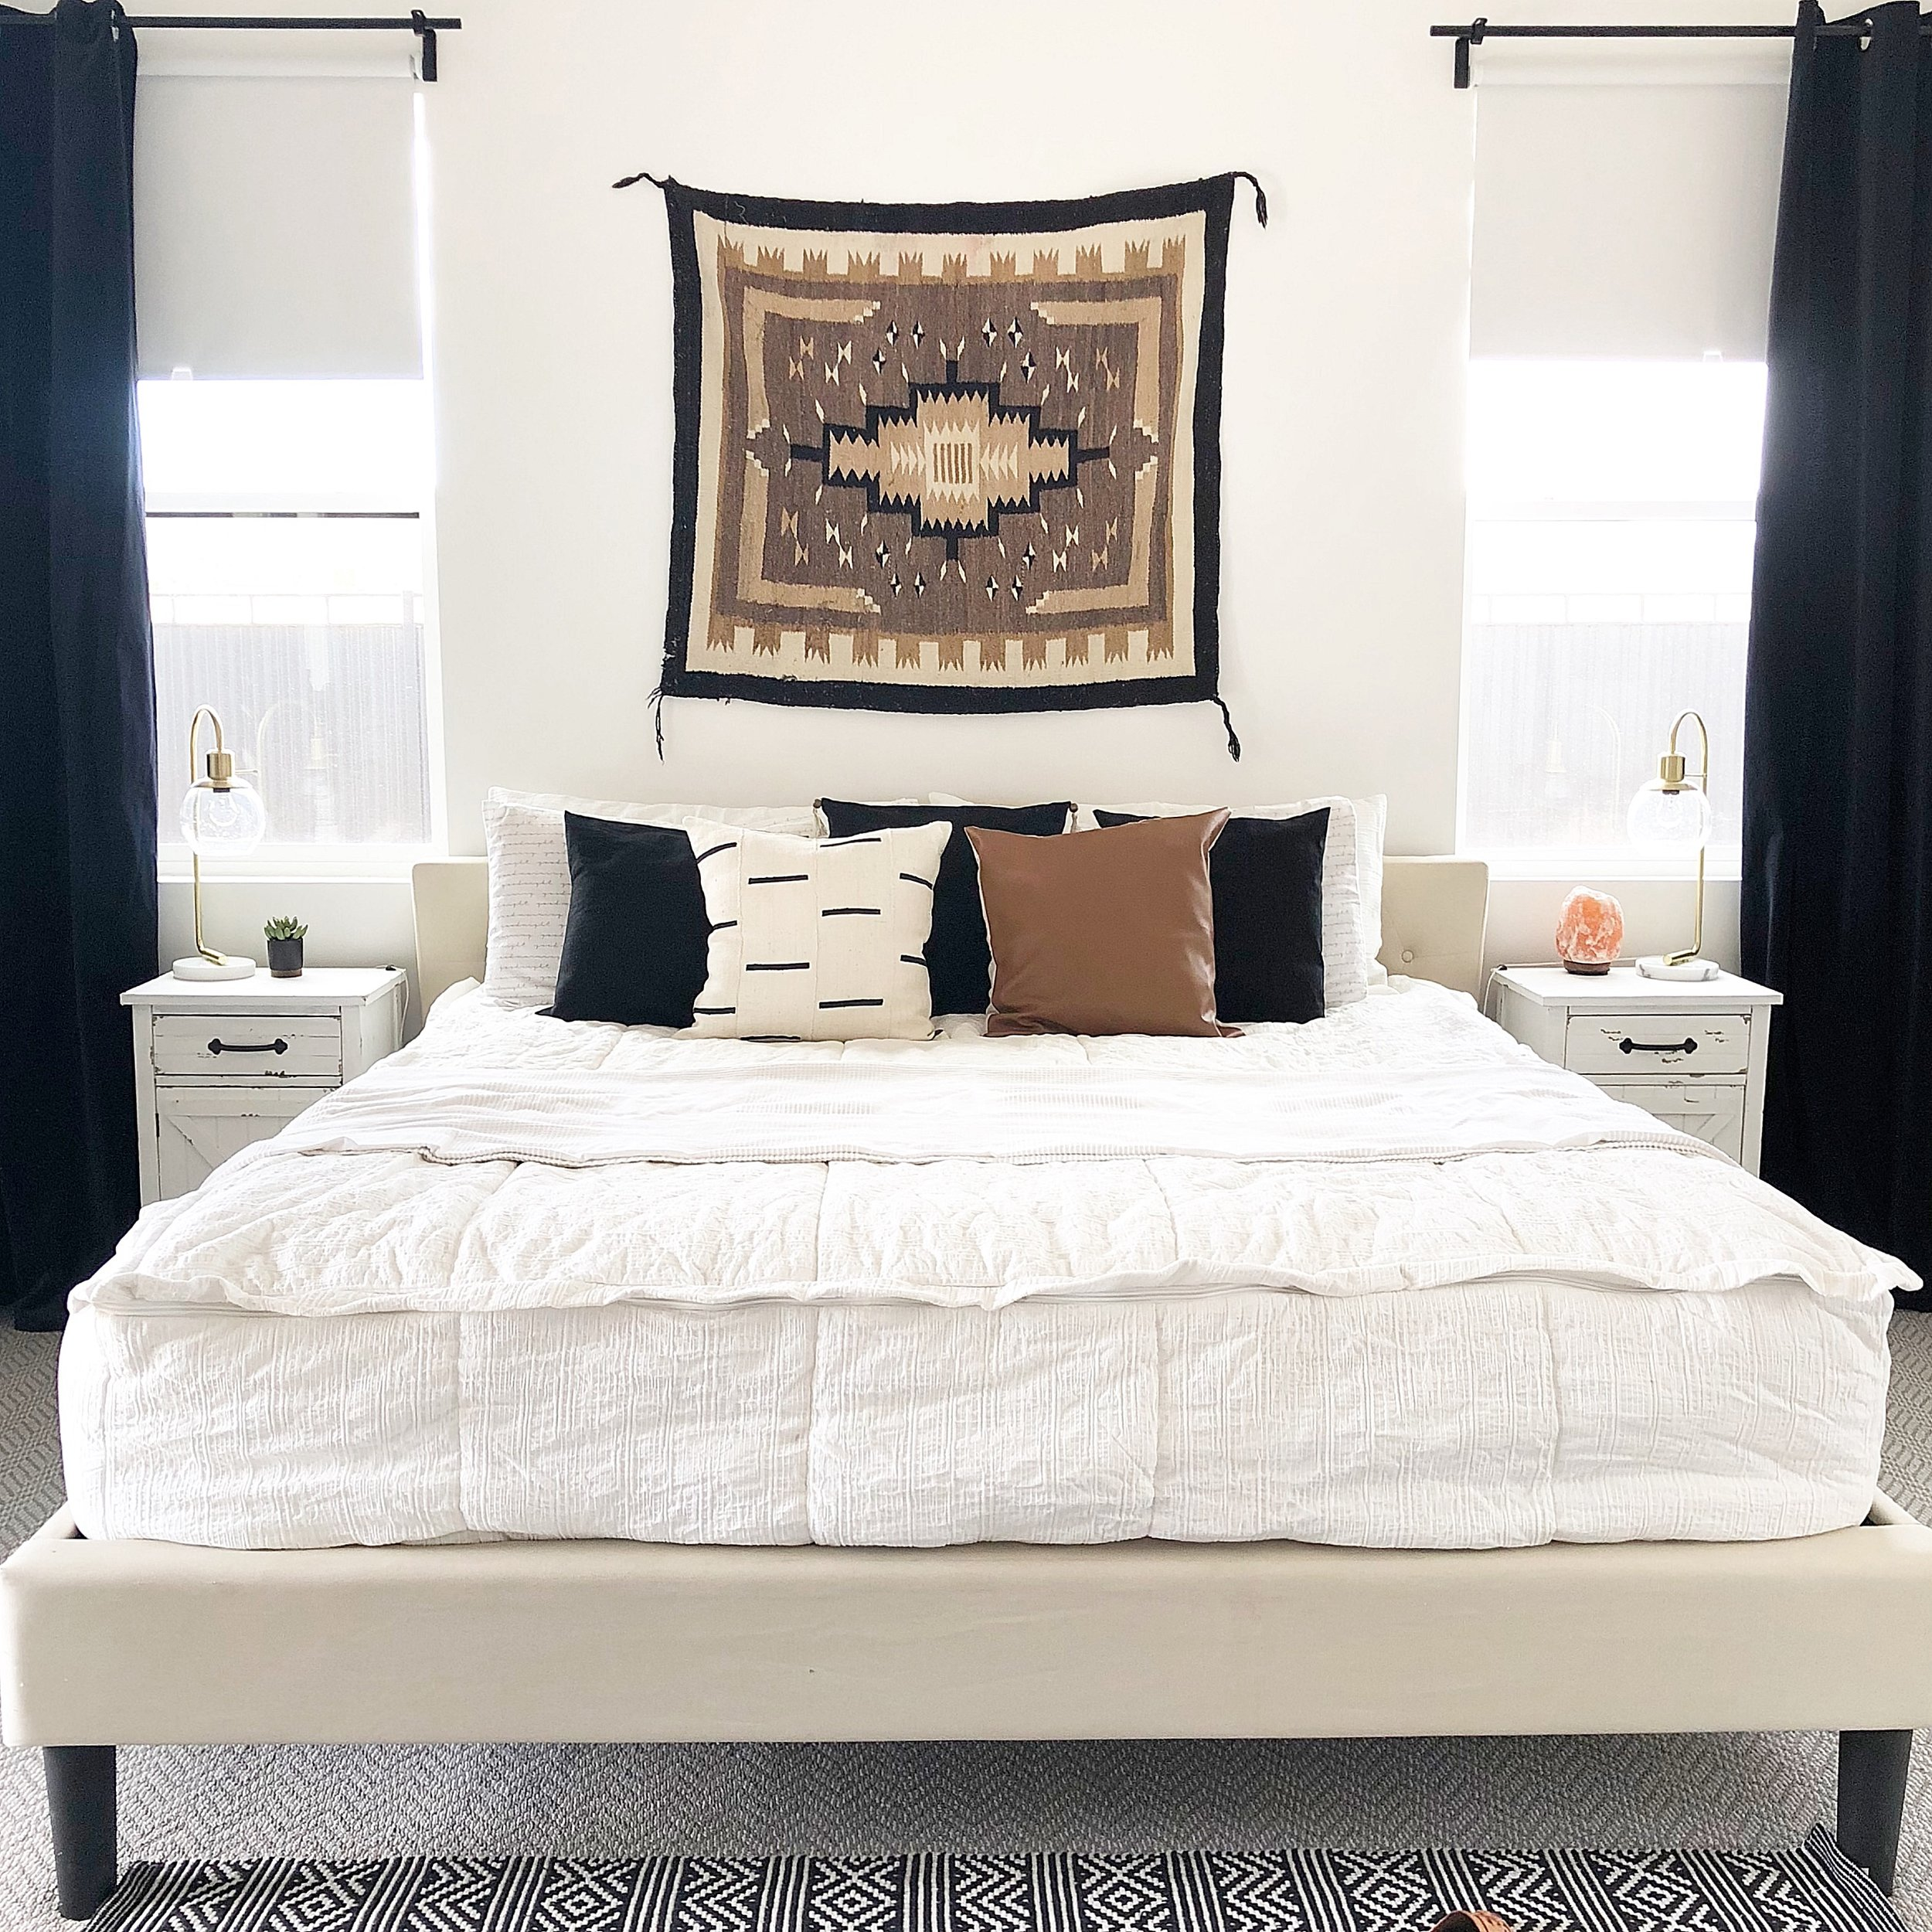 Bedding - Beddy's Beds/Love at first white